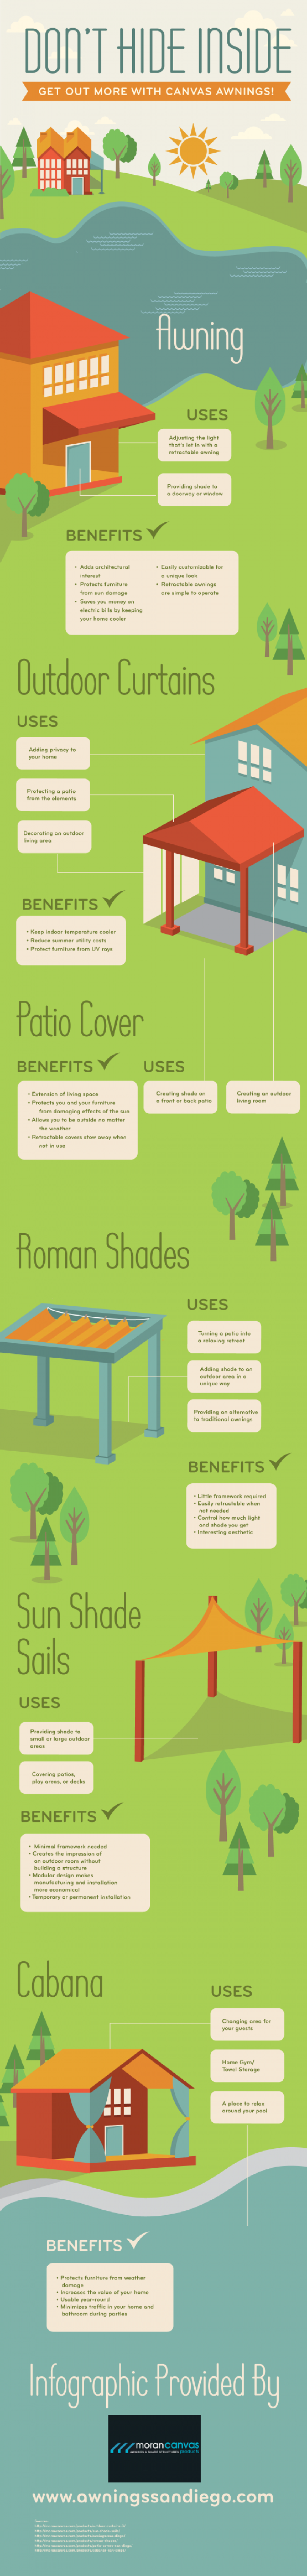 Don't Hide Inside: Get Out More with Canvas Awnings!  Infographic